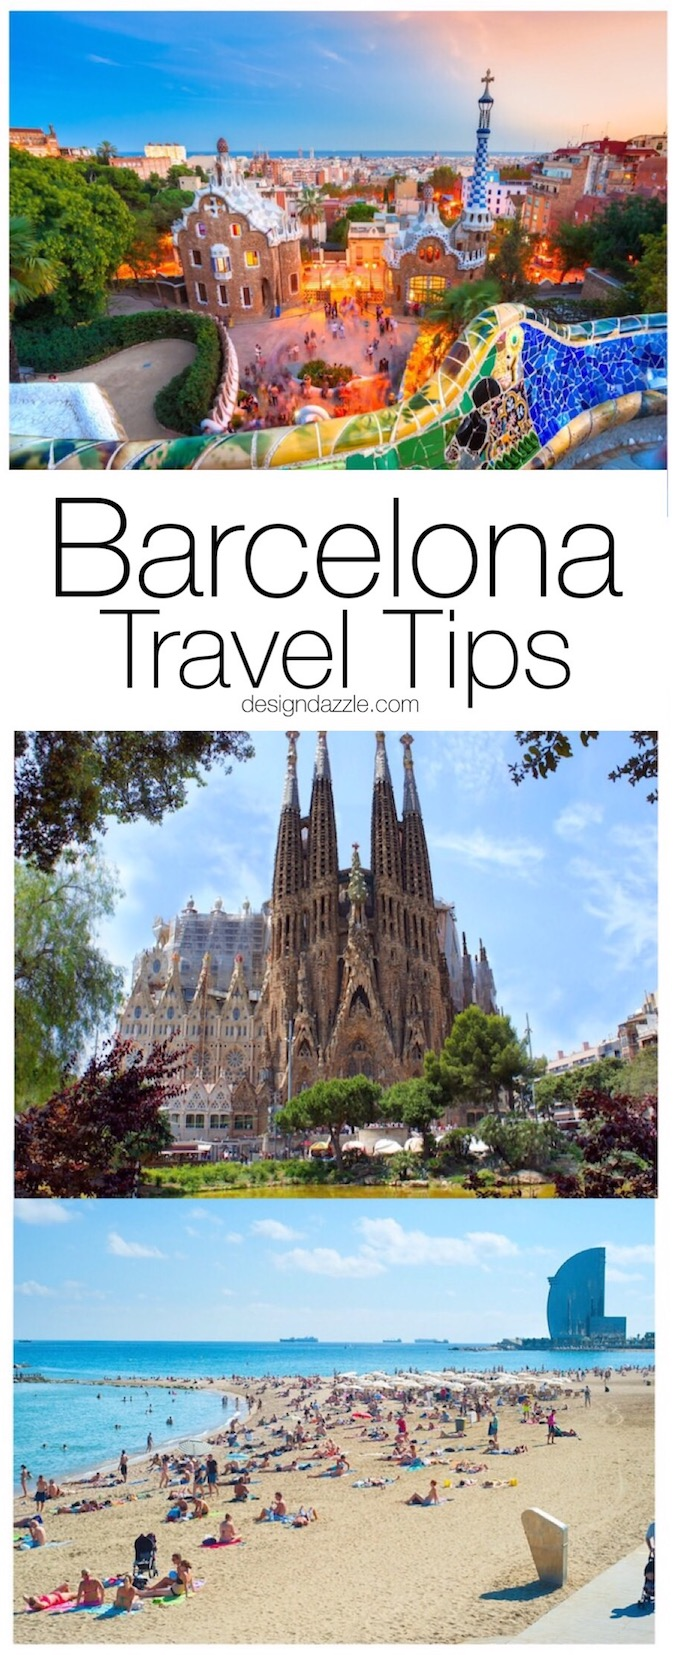 Traveling to Barcelona with a toddler can be both amazing and challenging. Here are some tips and suggestions to help make your trip to Barcelona memorable! | Design Dazzle